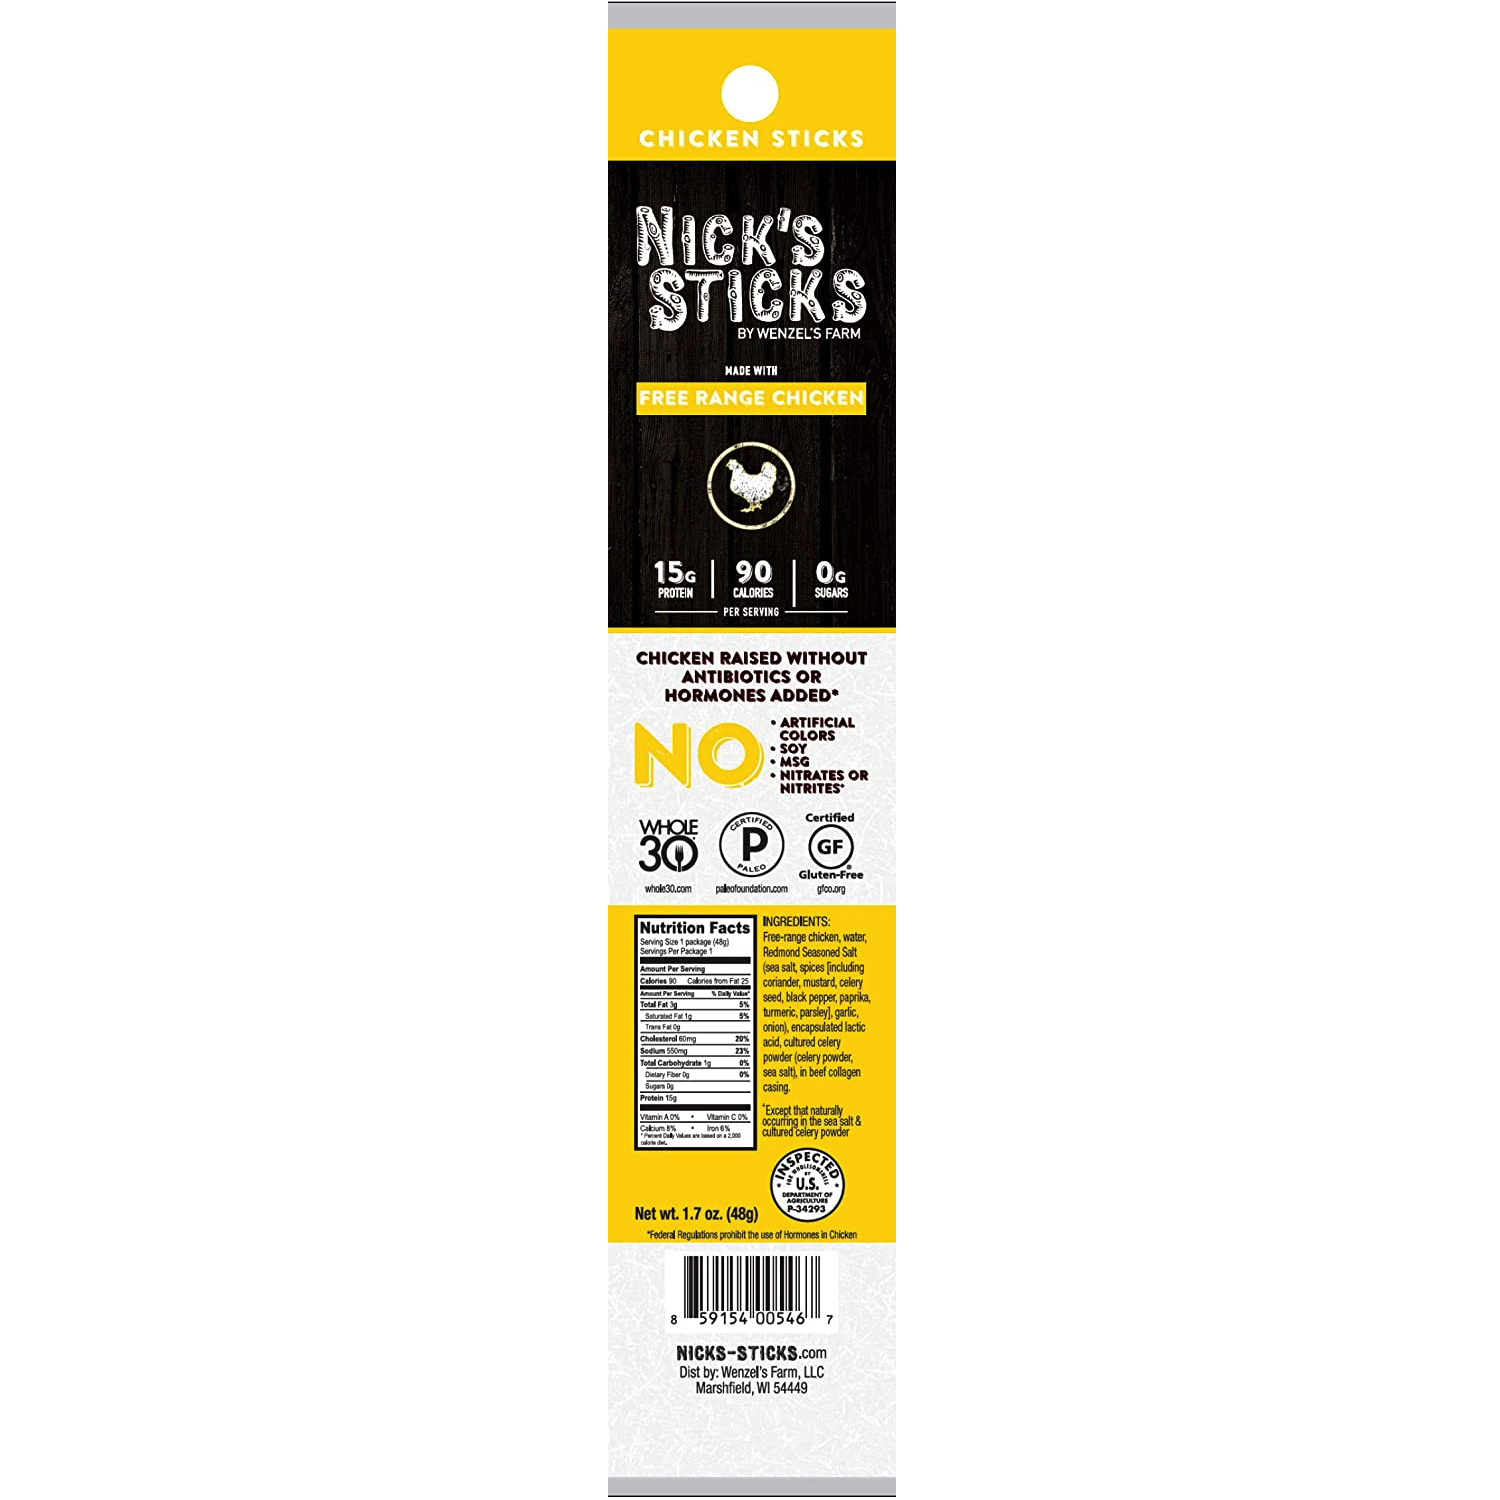 Free Range Chicken Snack Sticks - Nick's Sticks - Certified Paleo, Keto Certified by the Paleo Foundation